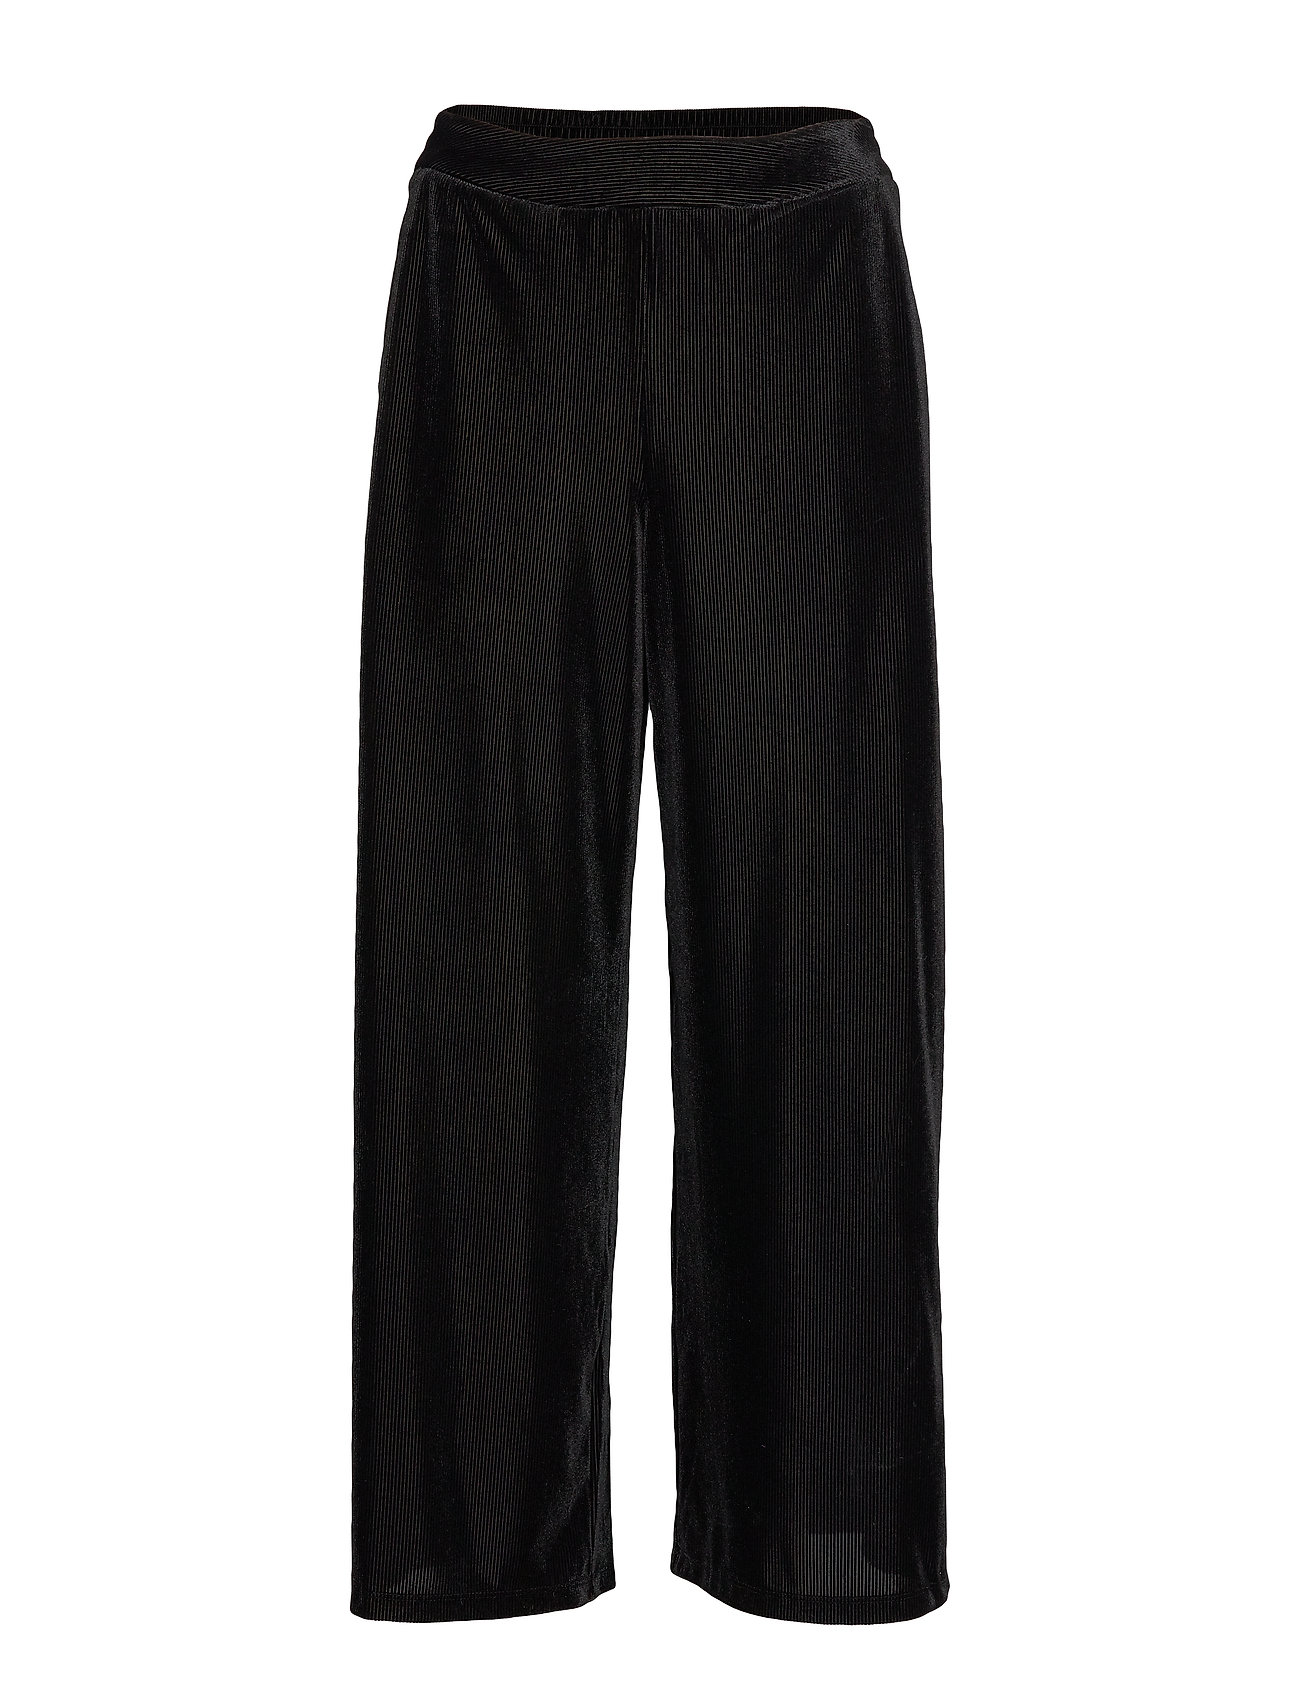 Vila VIBIANA HWRX 7/8 WIDE PANTS - BLACK